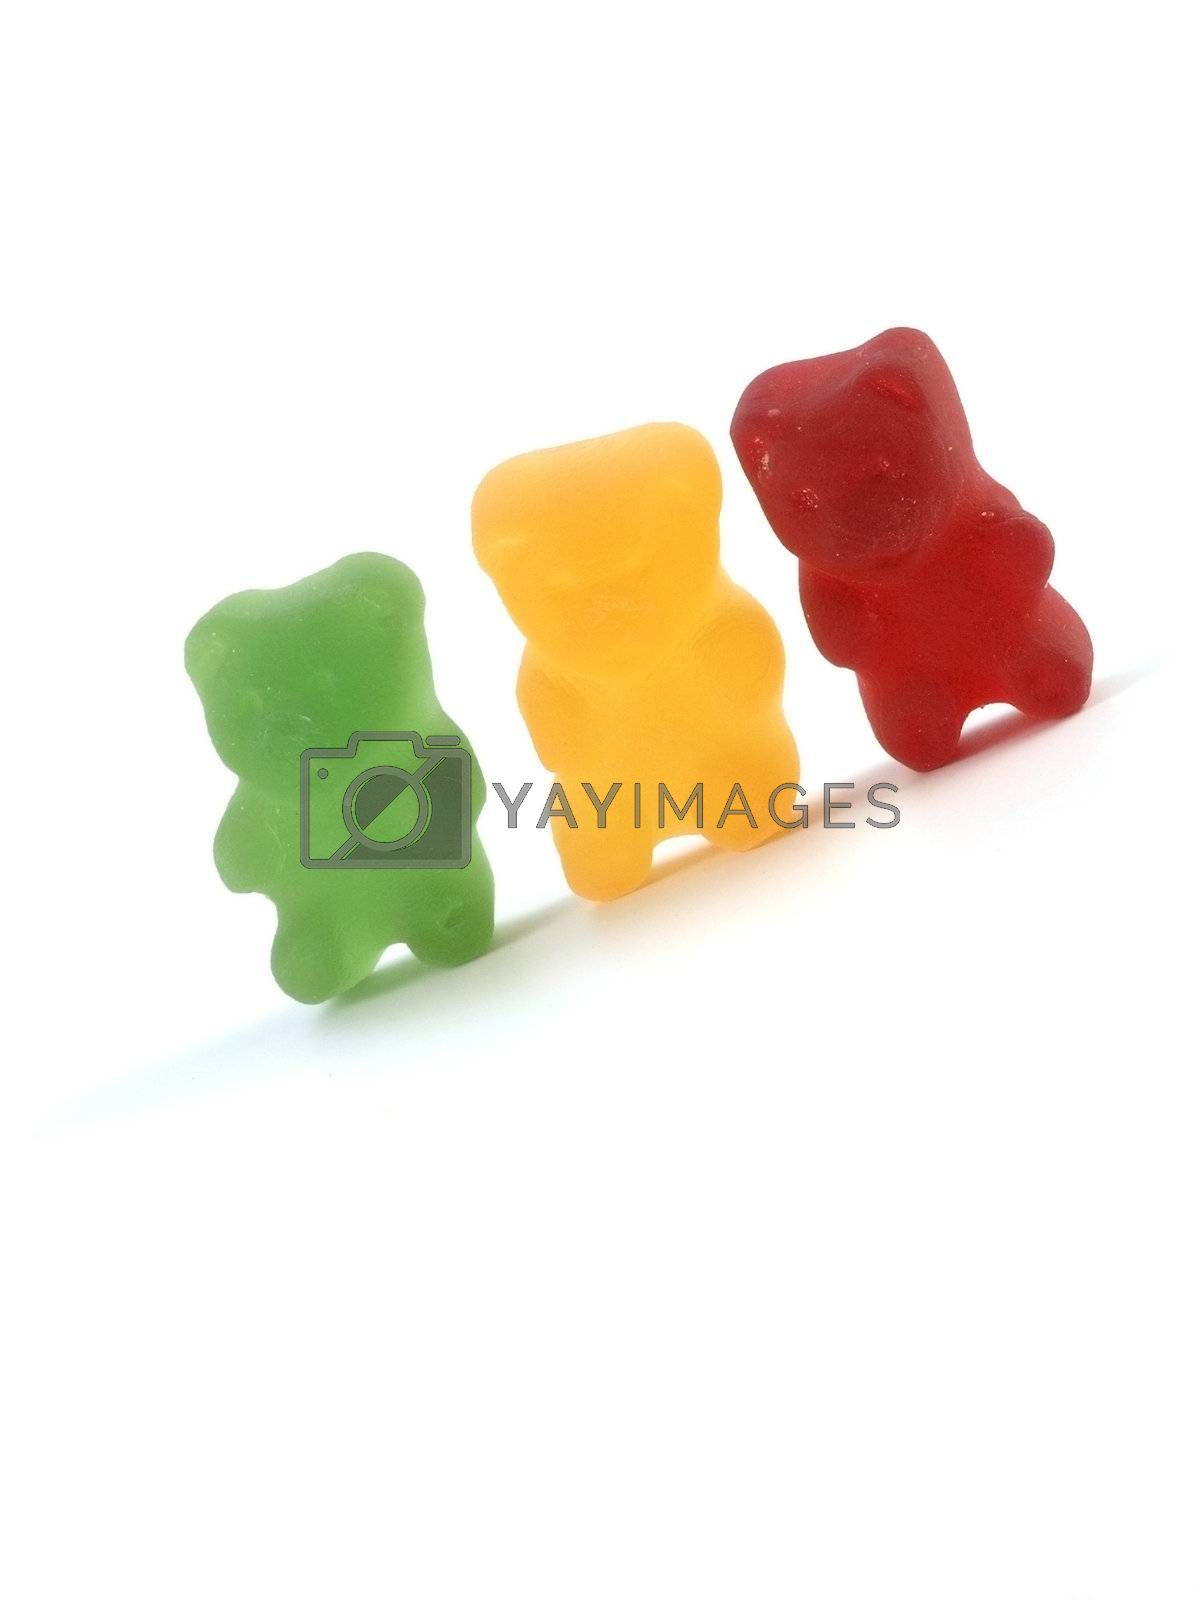 colorful sweet food on white background